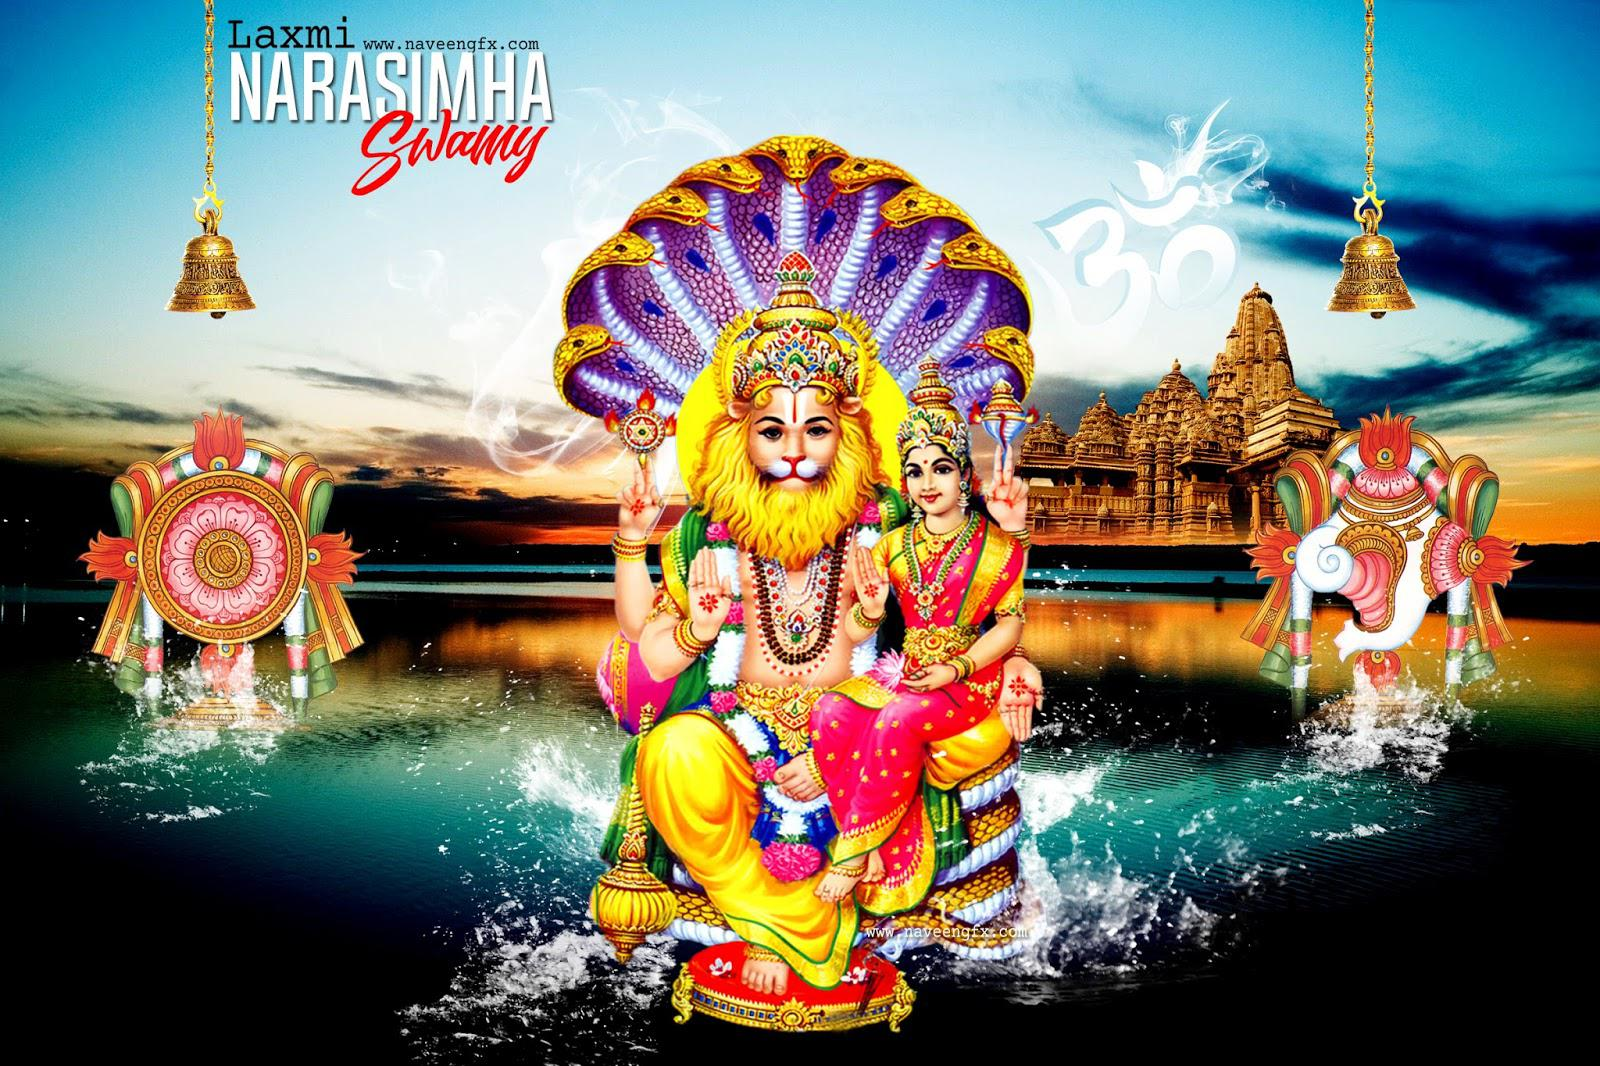 Lakshmi Narasimha Swamy Hd Wallpapers  image collections of